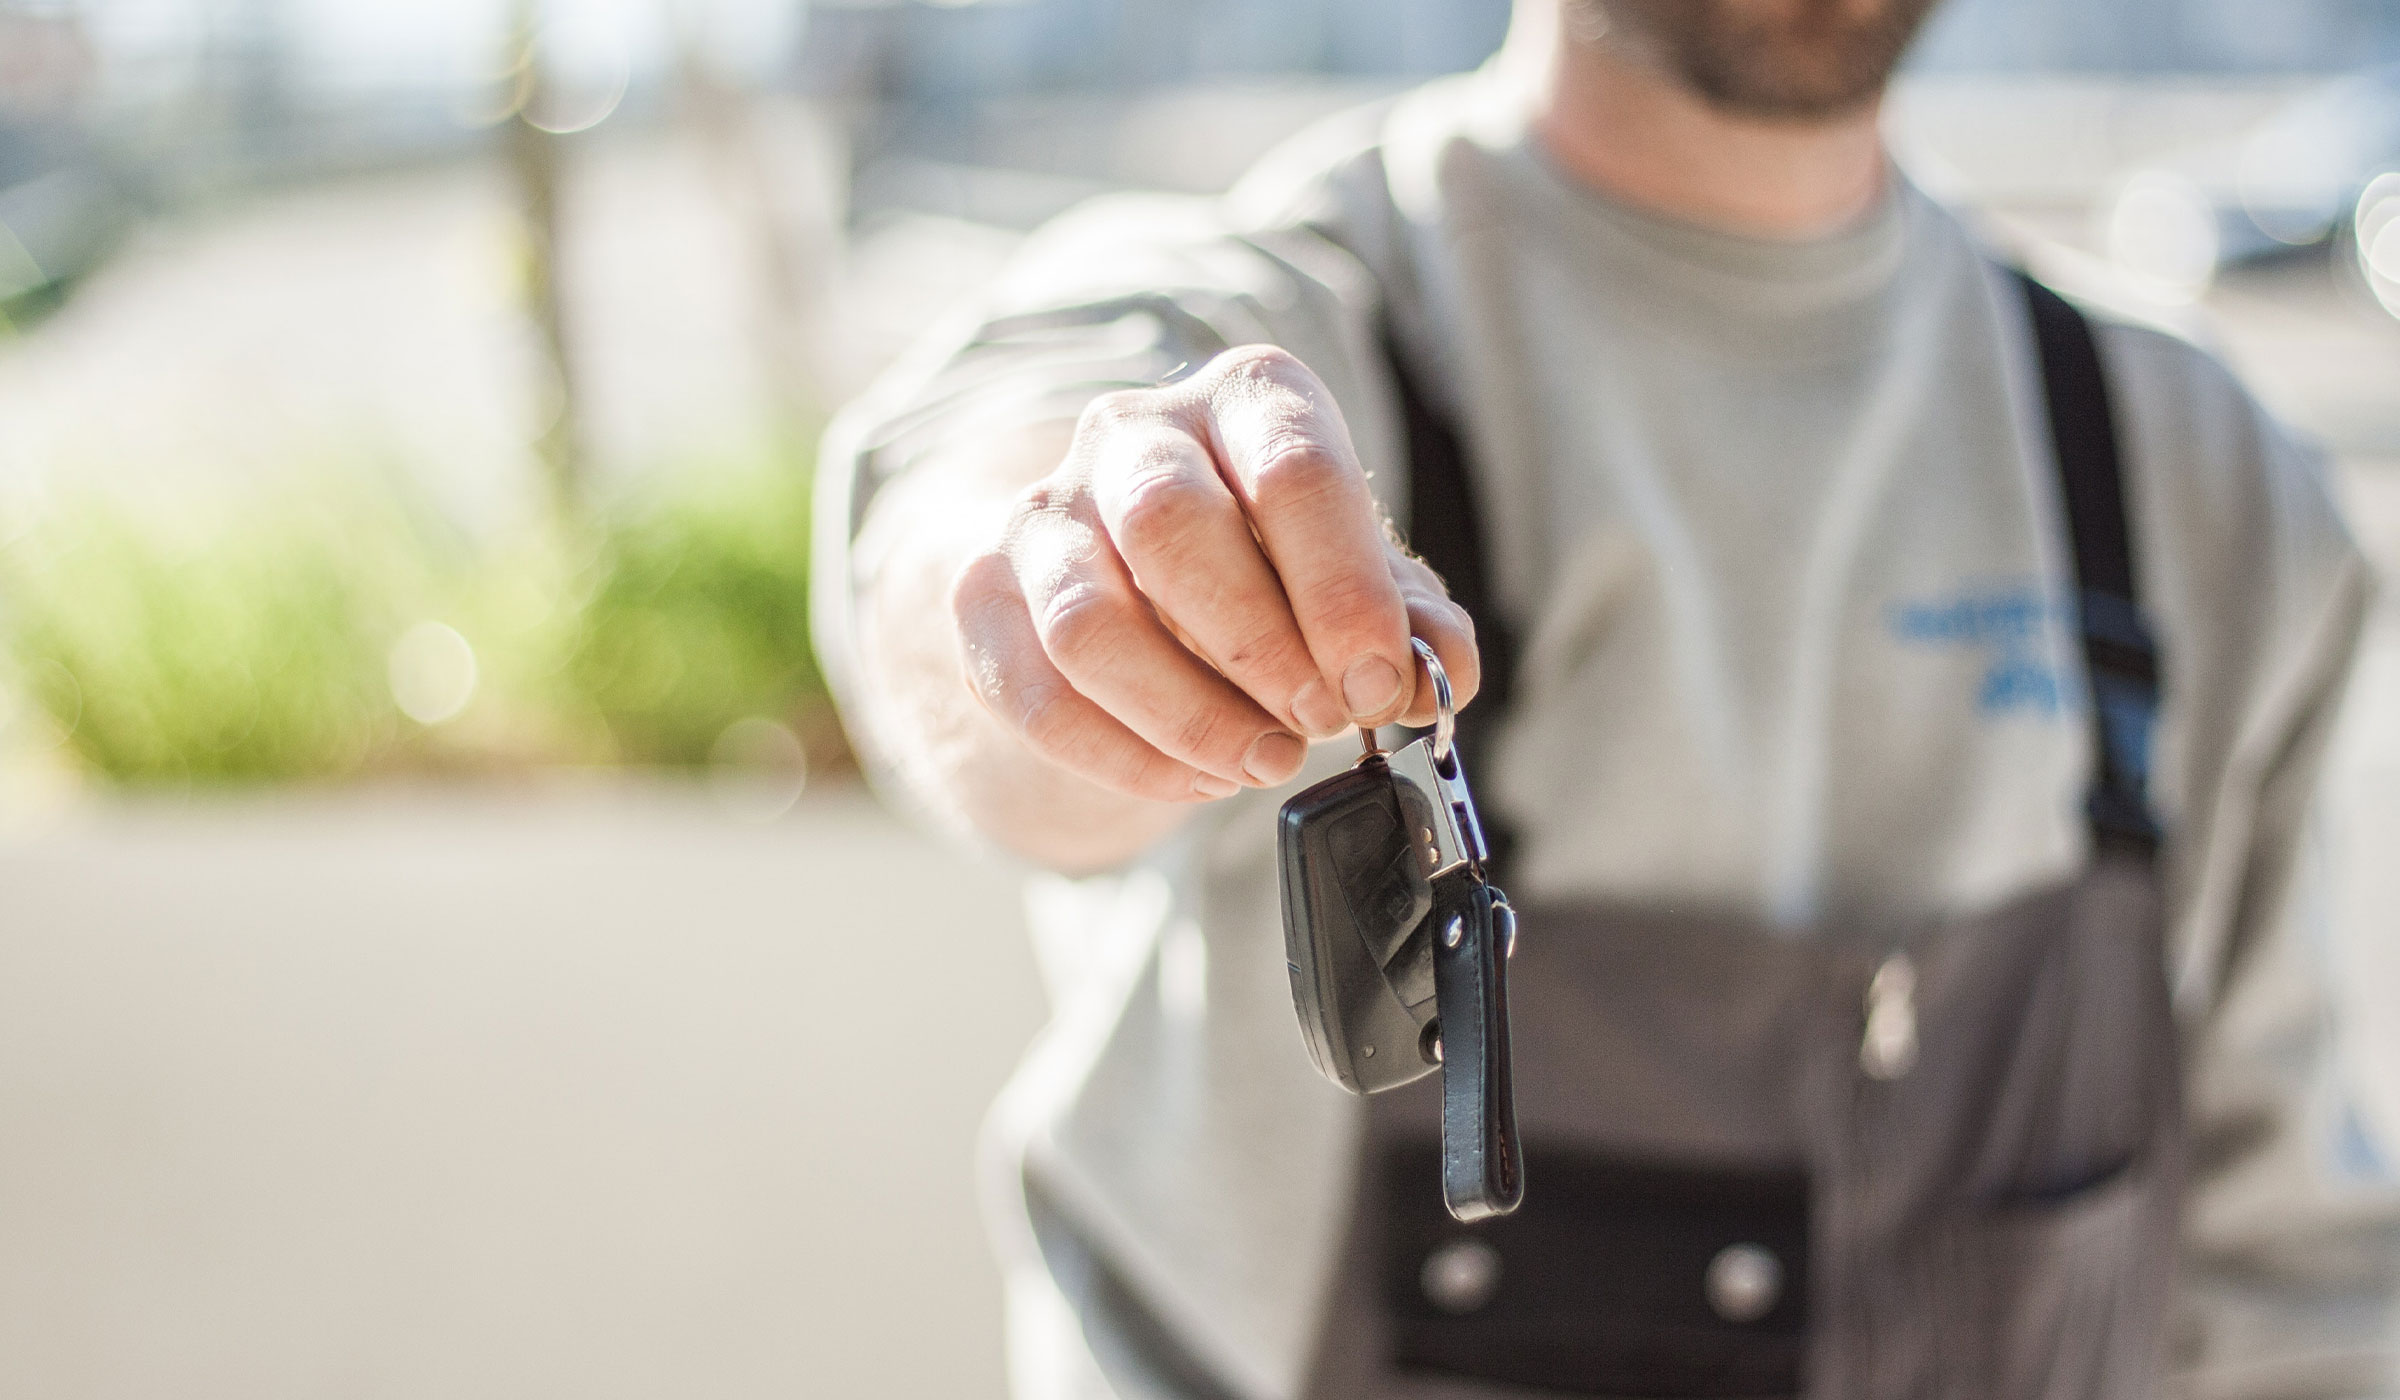 7 Reasons You Should Sell Your Used Car To A Dealership vs. Privately